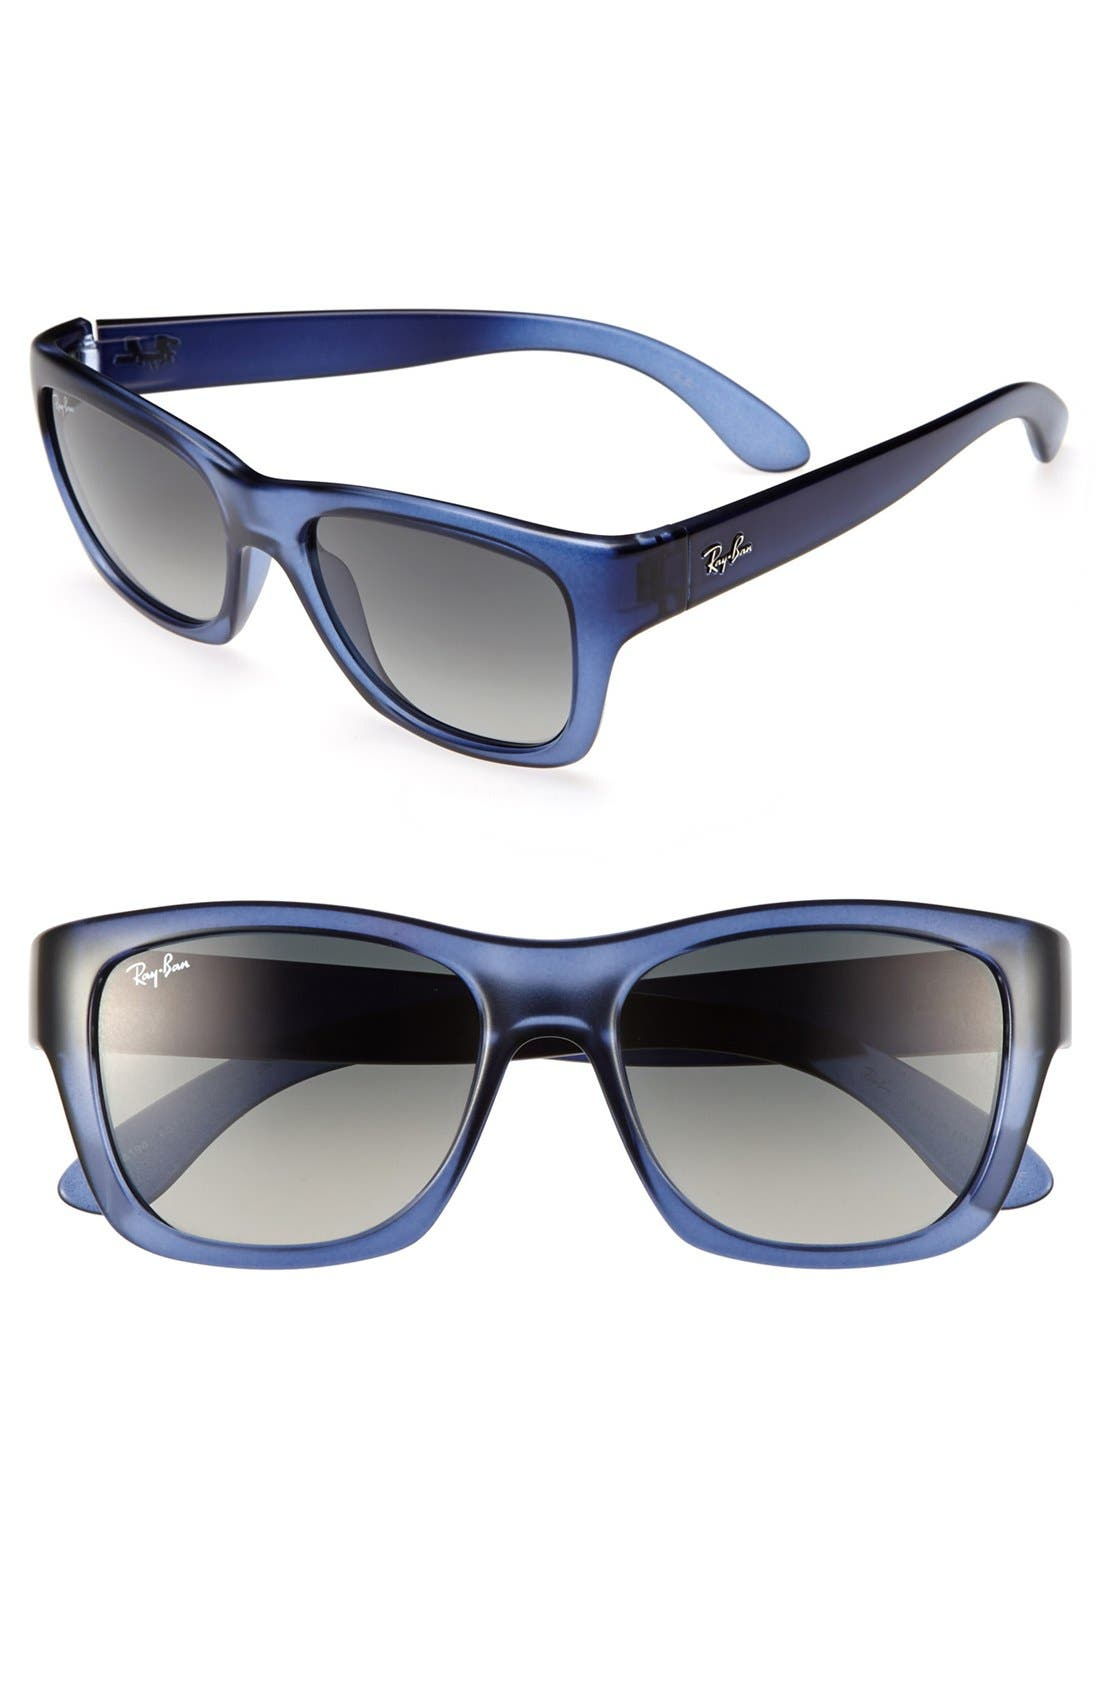 Main Image - Ray-Ban 'Square Glam' 53mm Sunglasses